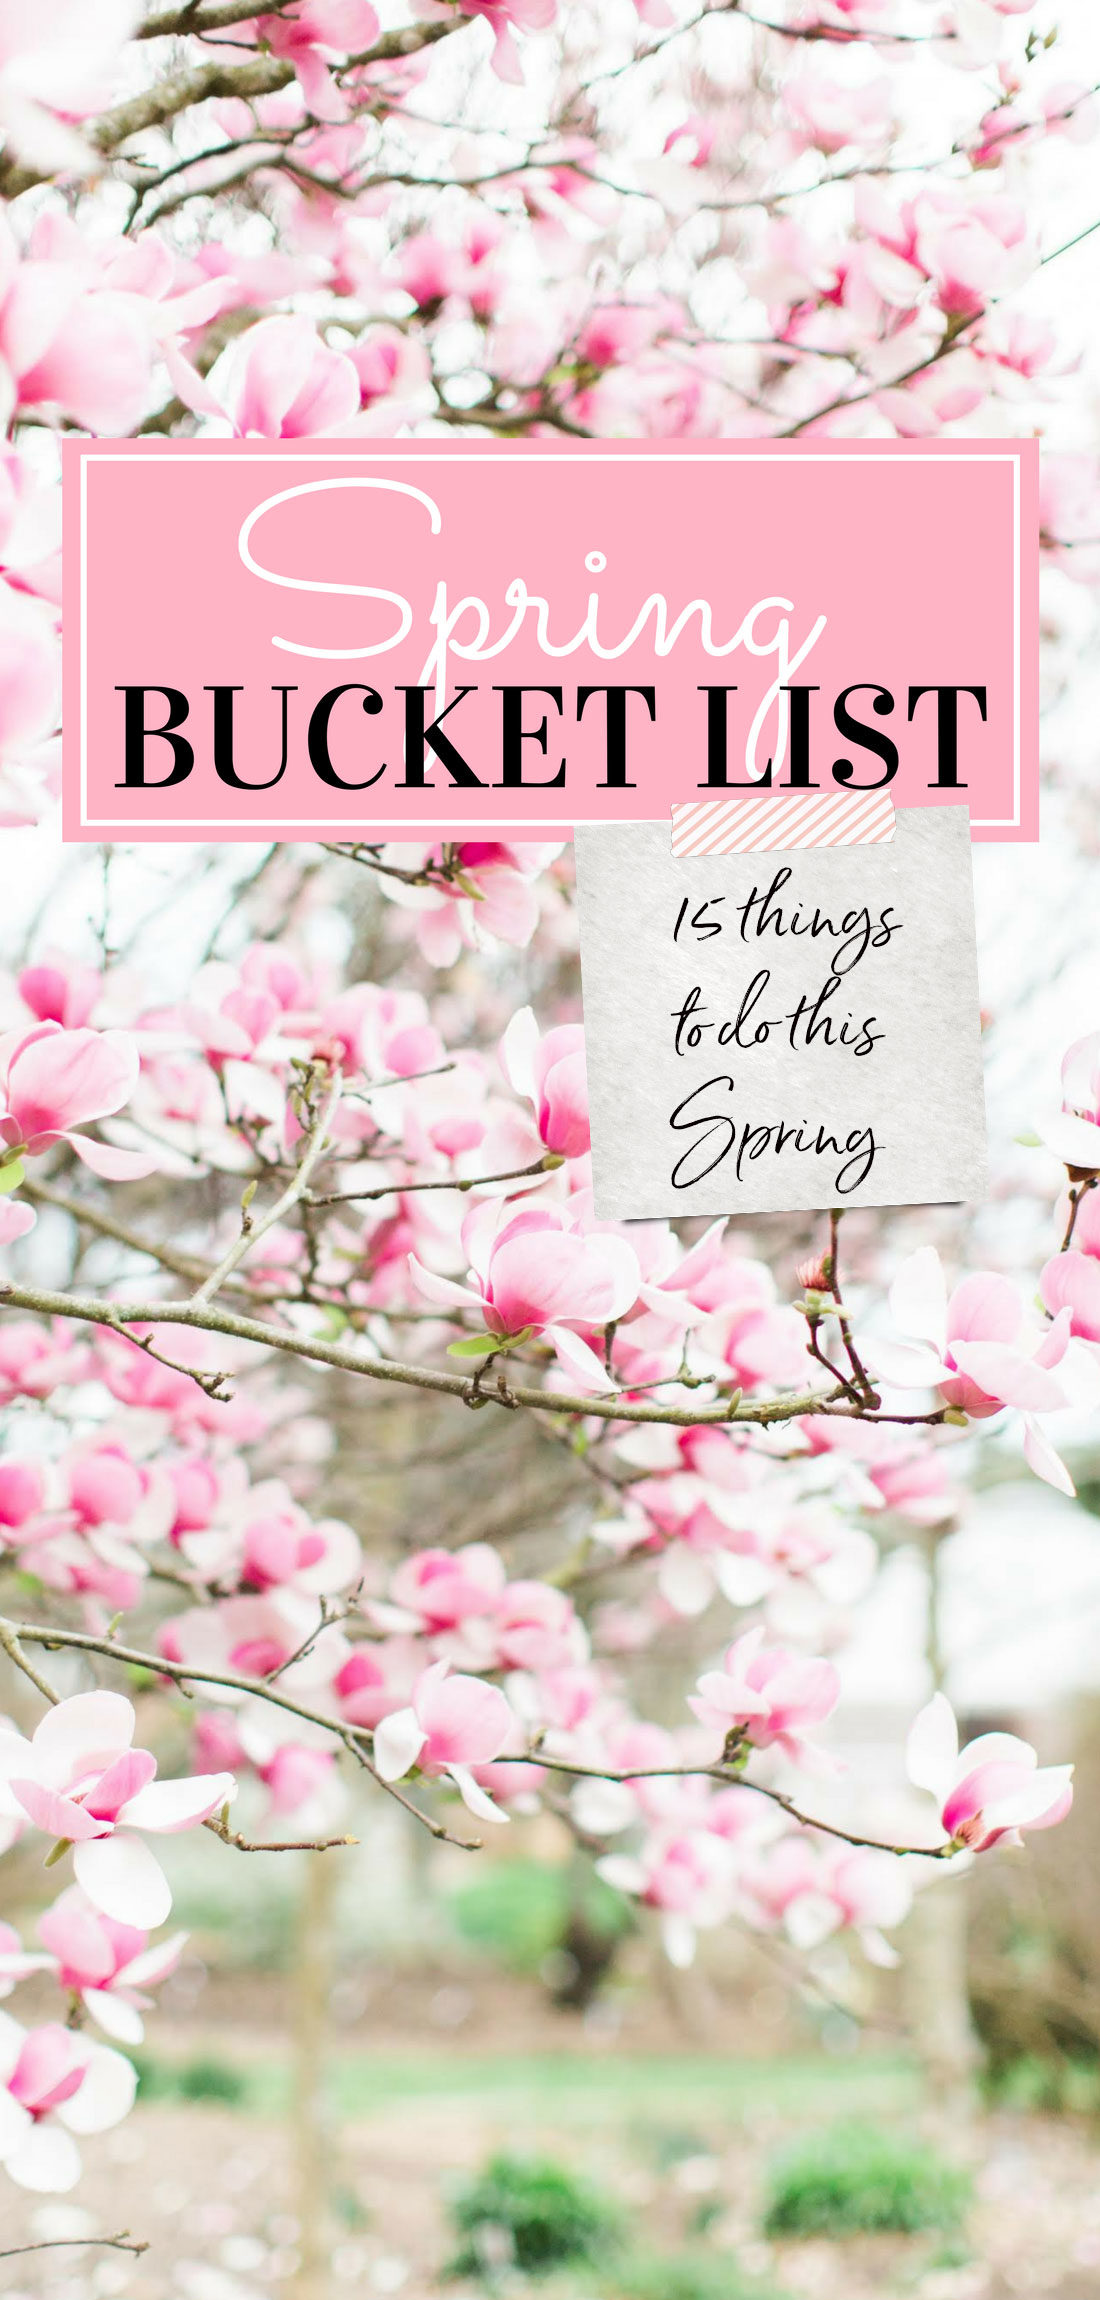 Looking for a little inspiration to kick your Spring bucket list (and to-do list!) into high gear? Lifestyle blogger Lexi of Glitter, Inc. is sharing the 15 things topping her Spring to-do list. | glitterinc.com | @glitterinc